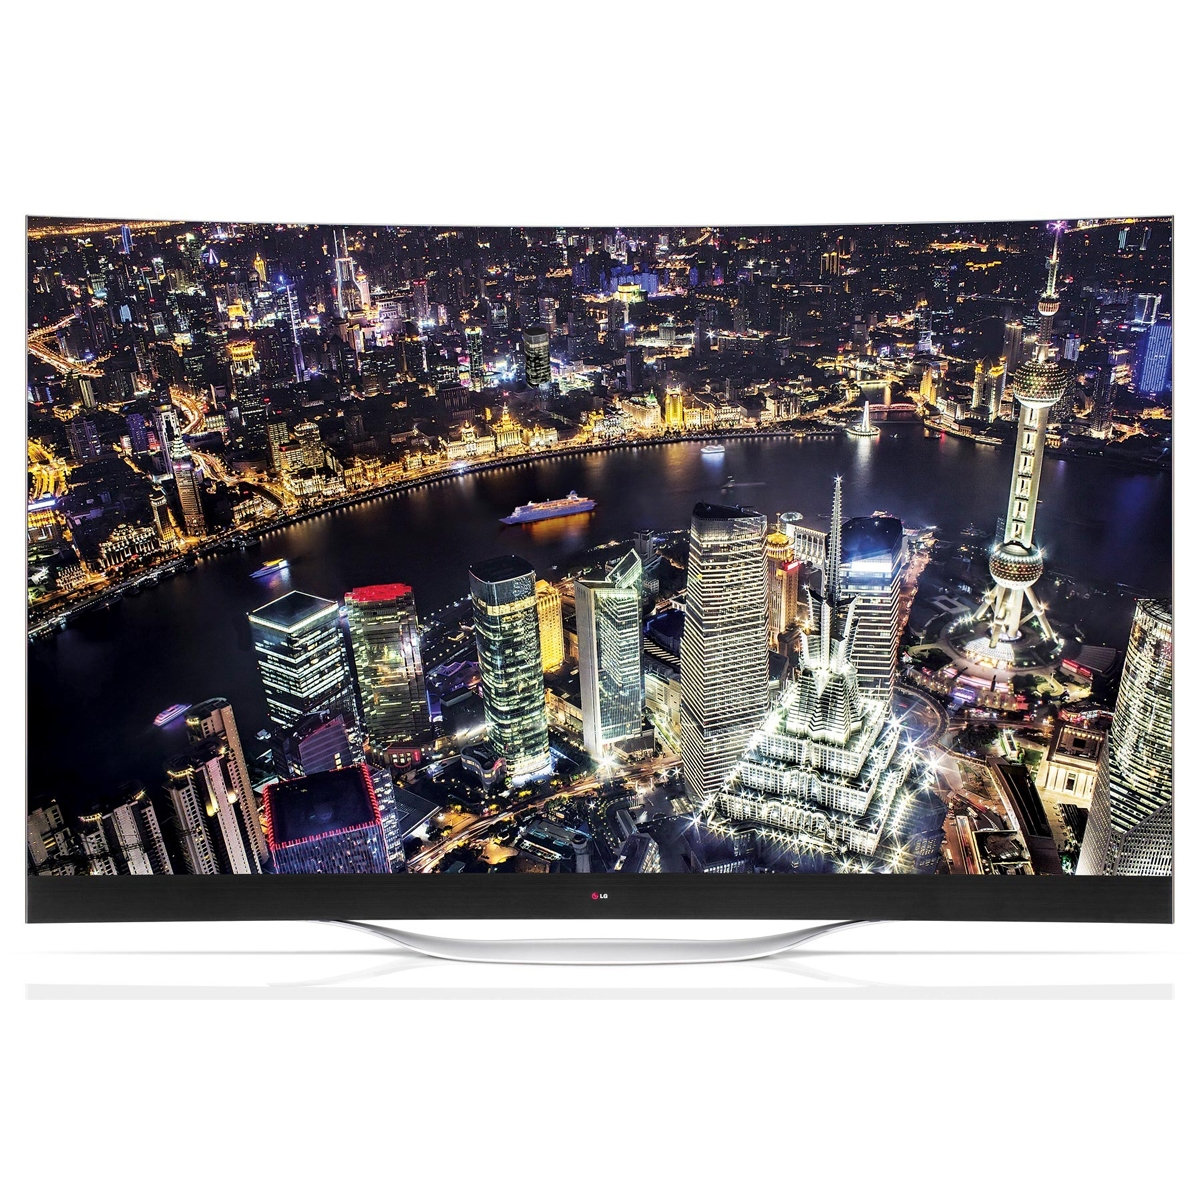 LG 55 INCH CLASS OLED CURVED  SMART HDTV - 55EC9300 - RESIDENTIAL USA VERSION -LG ORIGINAL PANEL - FULL ONE YEAR MANUFACTURERS WARRANTY!